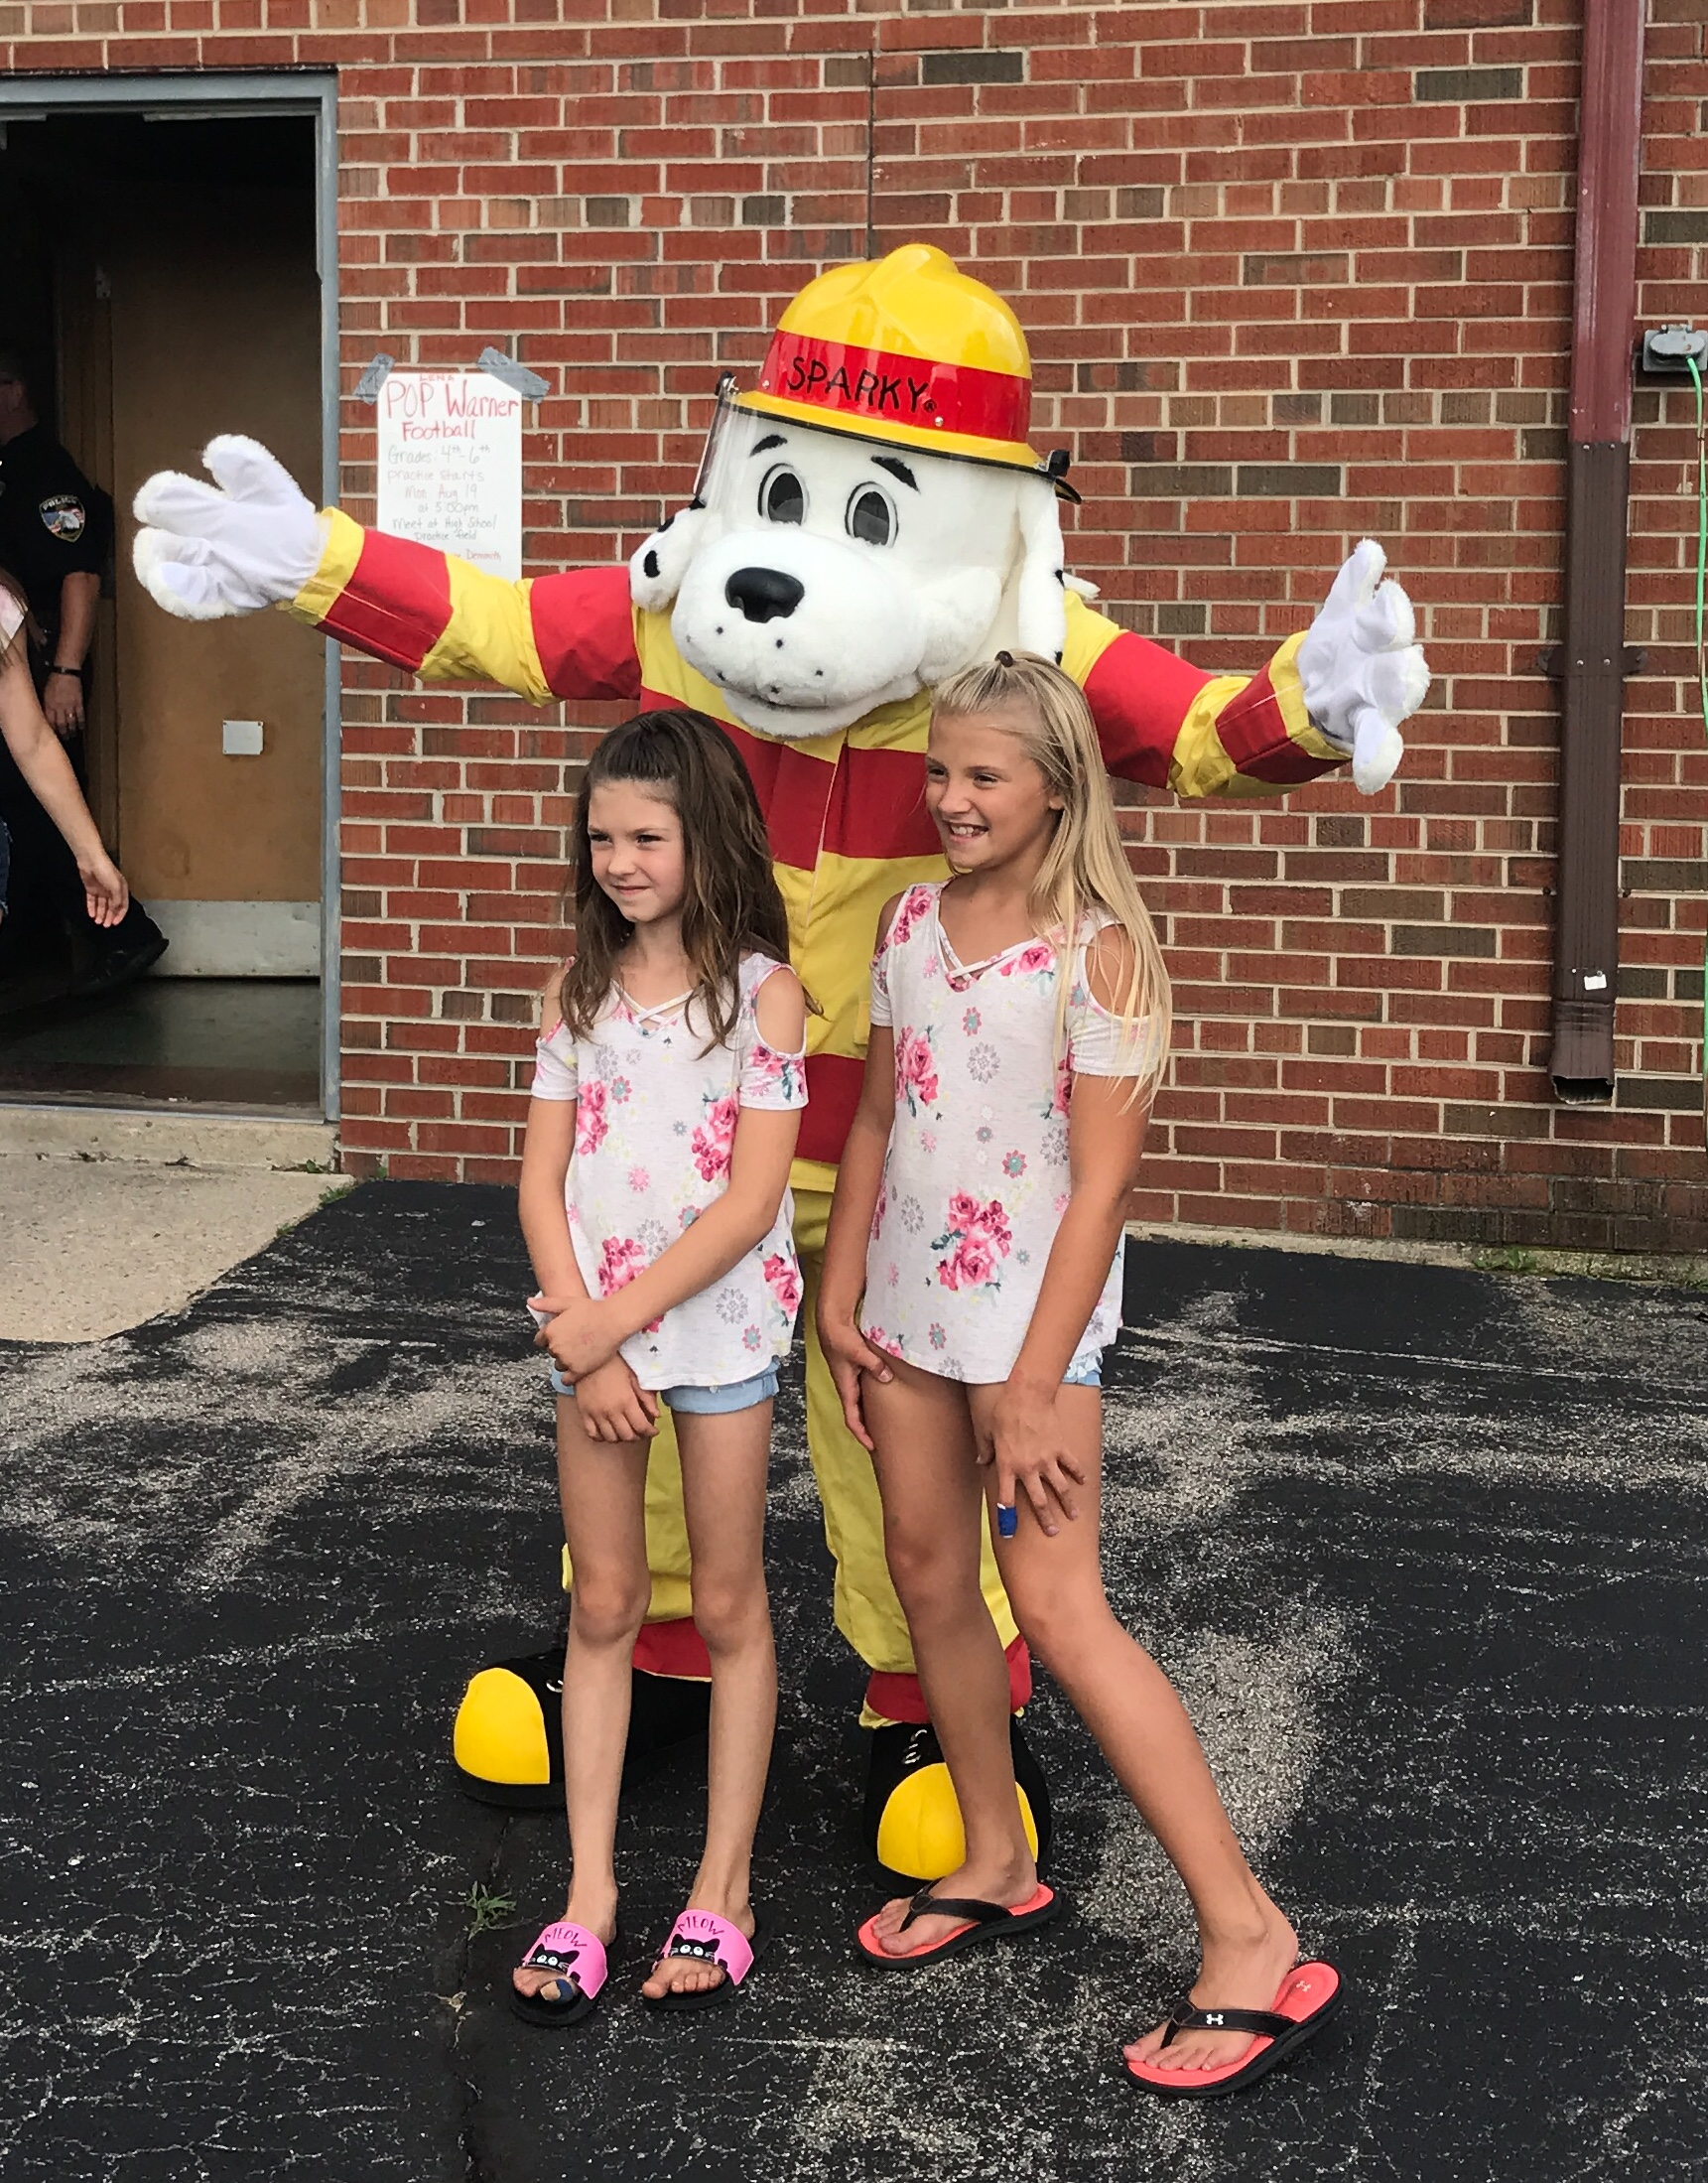 McKenna Suring and Brielle Fischer have a photo op with Sparky the Fire Dog.